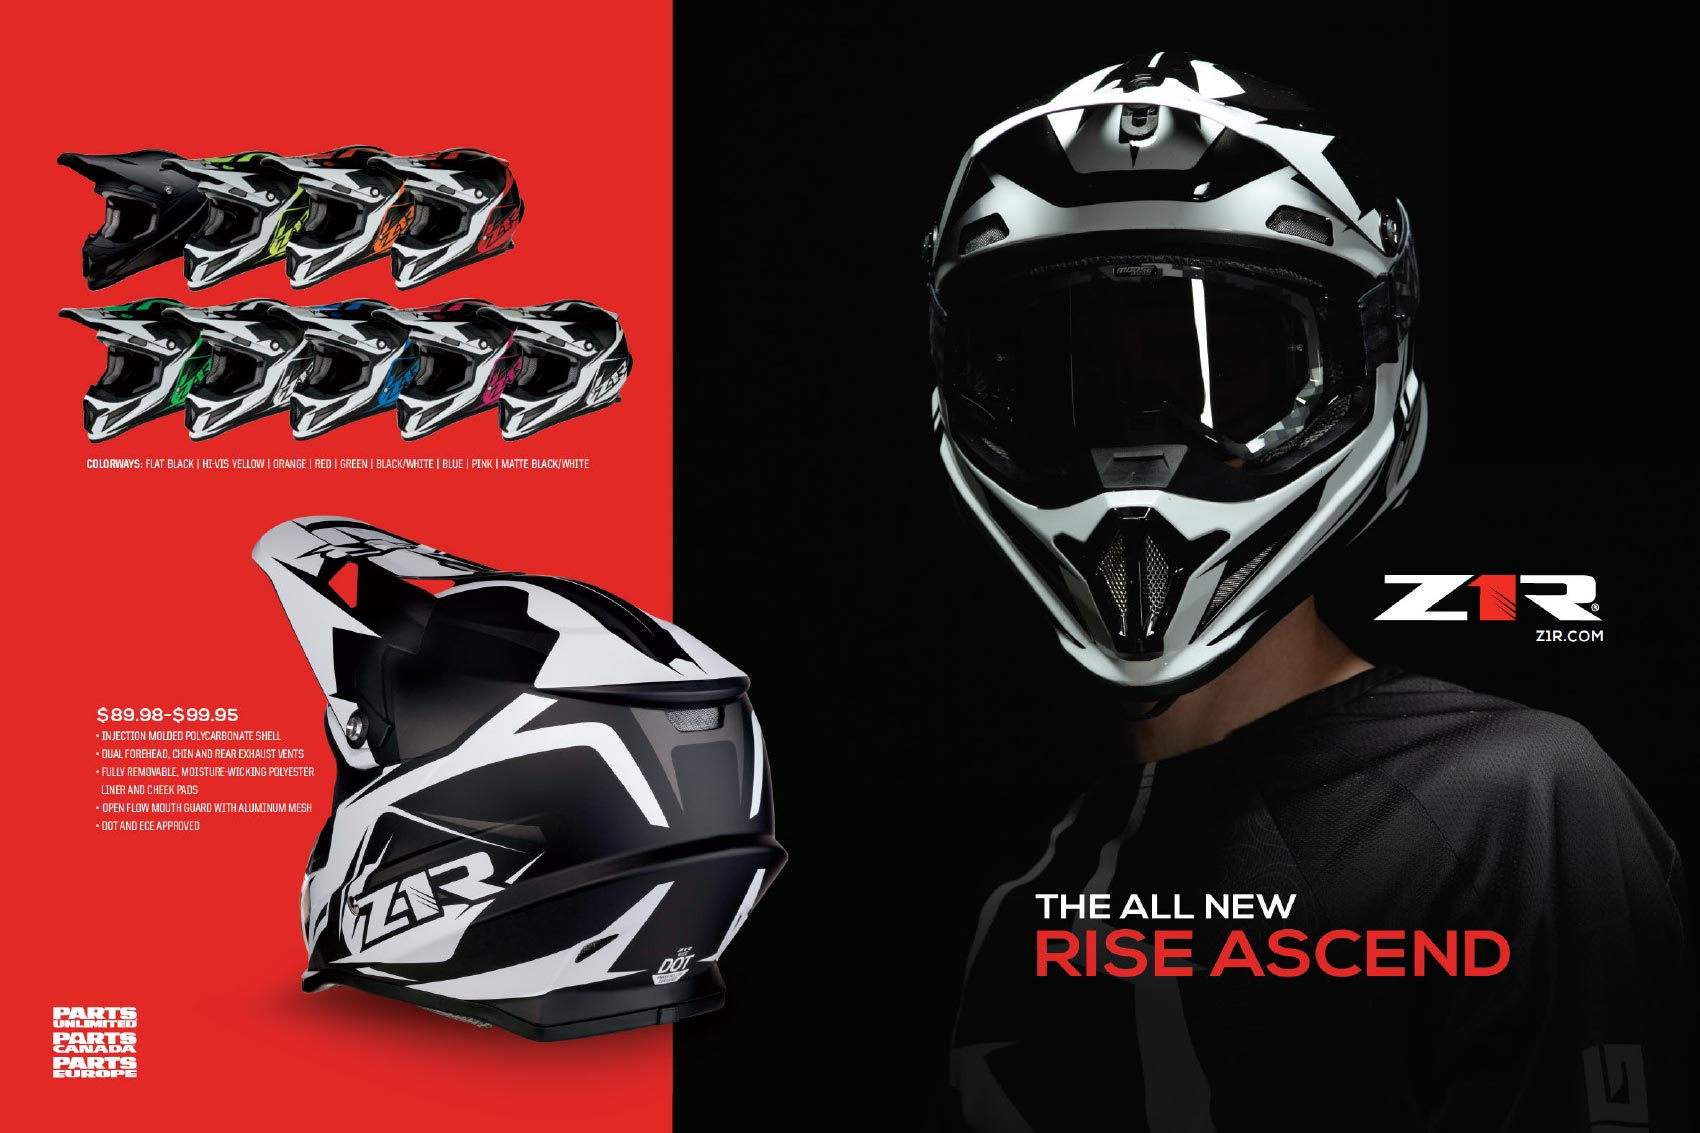 Racer X May 2019 - Z1R Advertisement